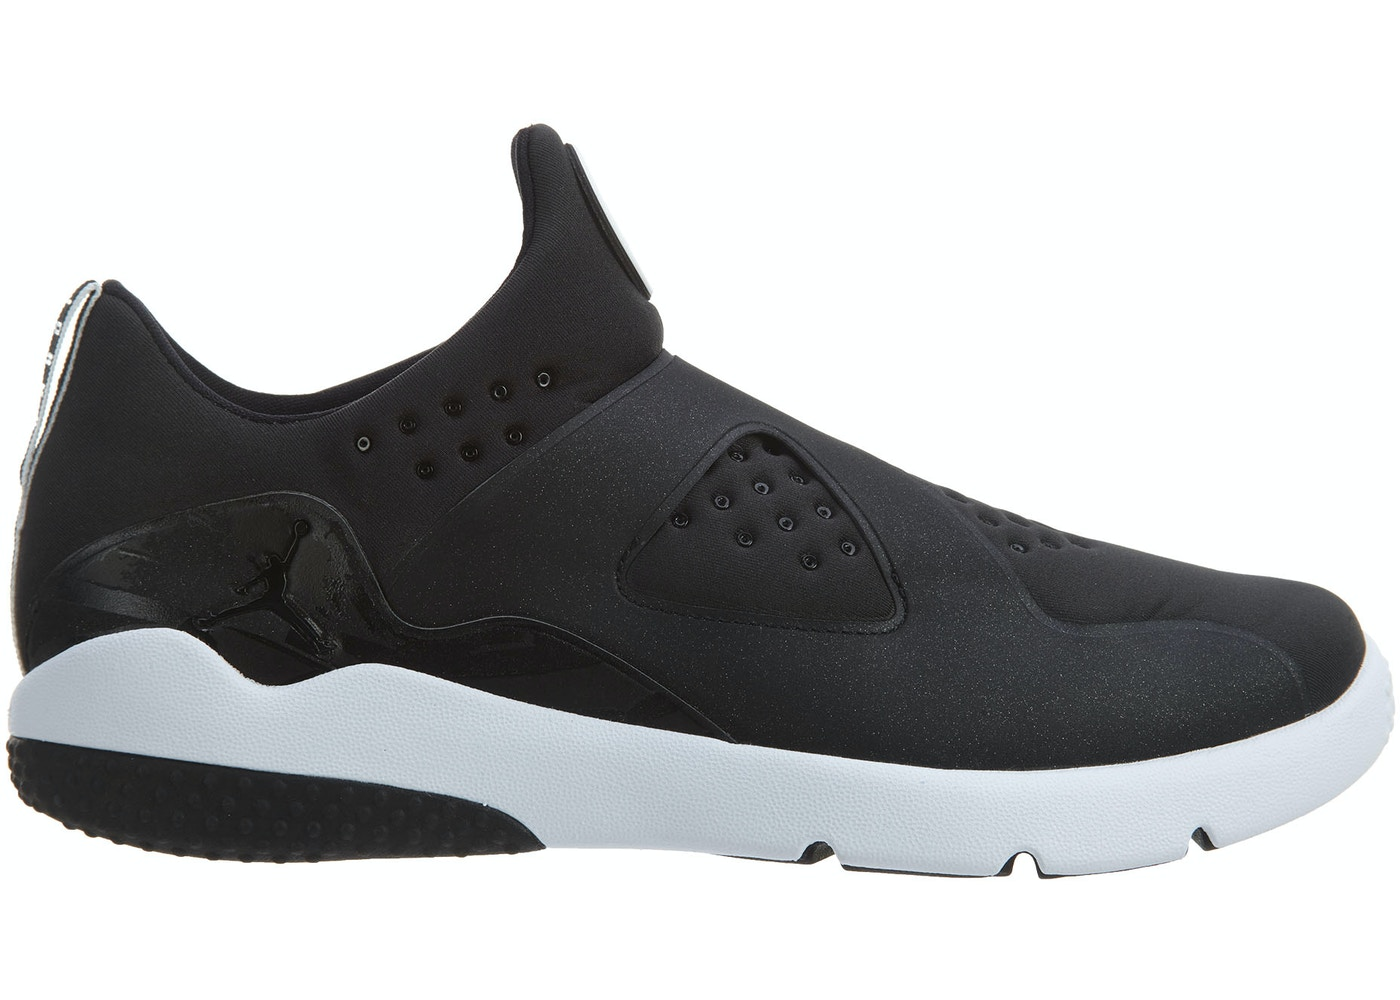 finest selection 97256 2cc97 Jordan Trainer Essential Black Black-White - 888122-001